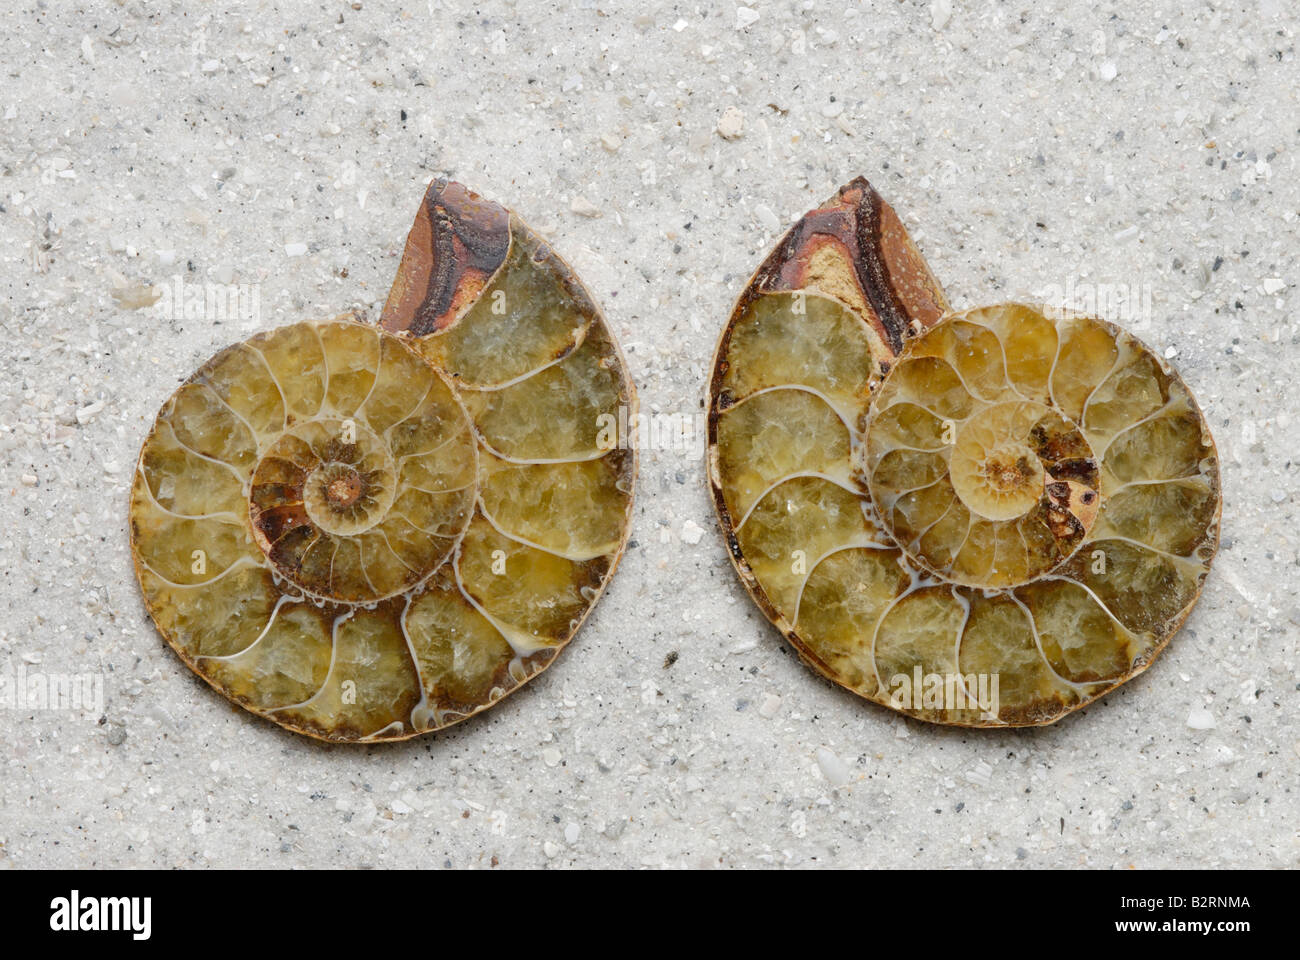 Internal view of a sectioned ammonite fossil Perisphinctes sp from Madagascar Jurassic Period Stock Photo